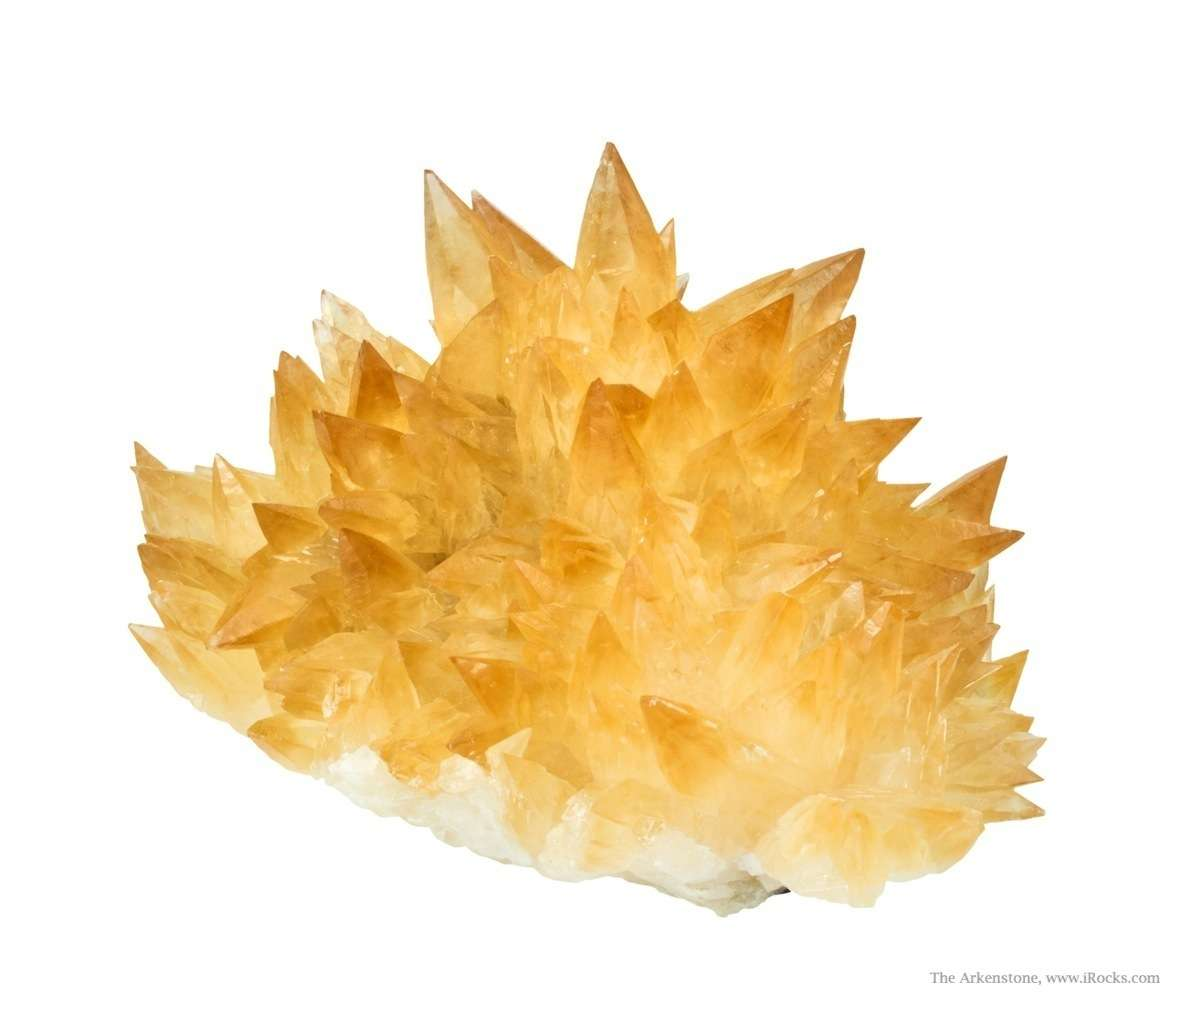 NOT just pointy calcite This lovely hedgehog cluster intensely golden